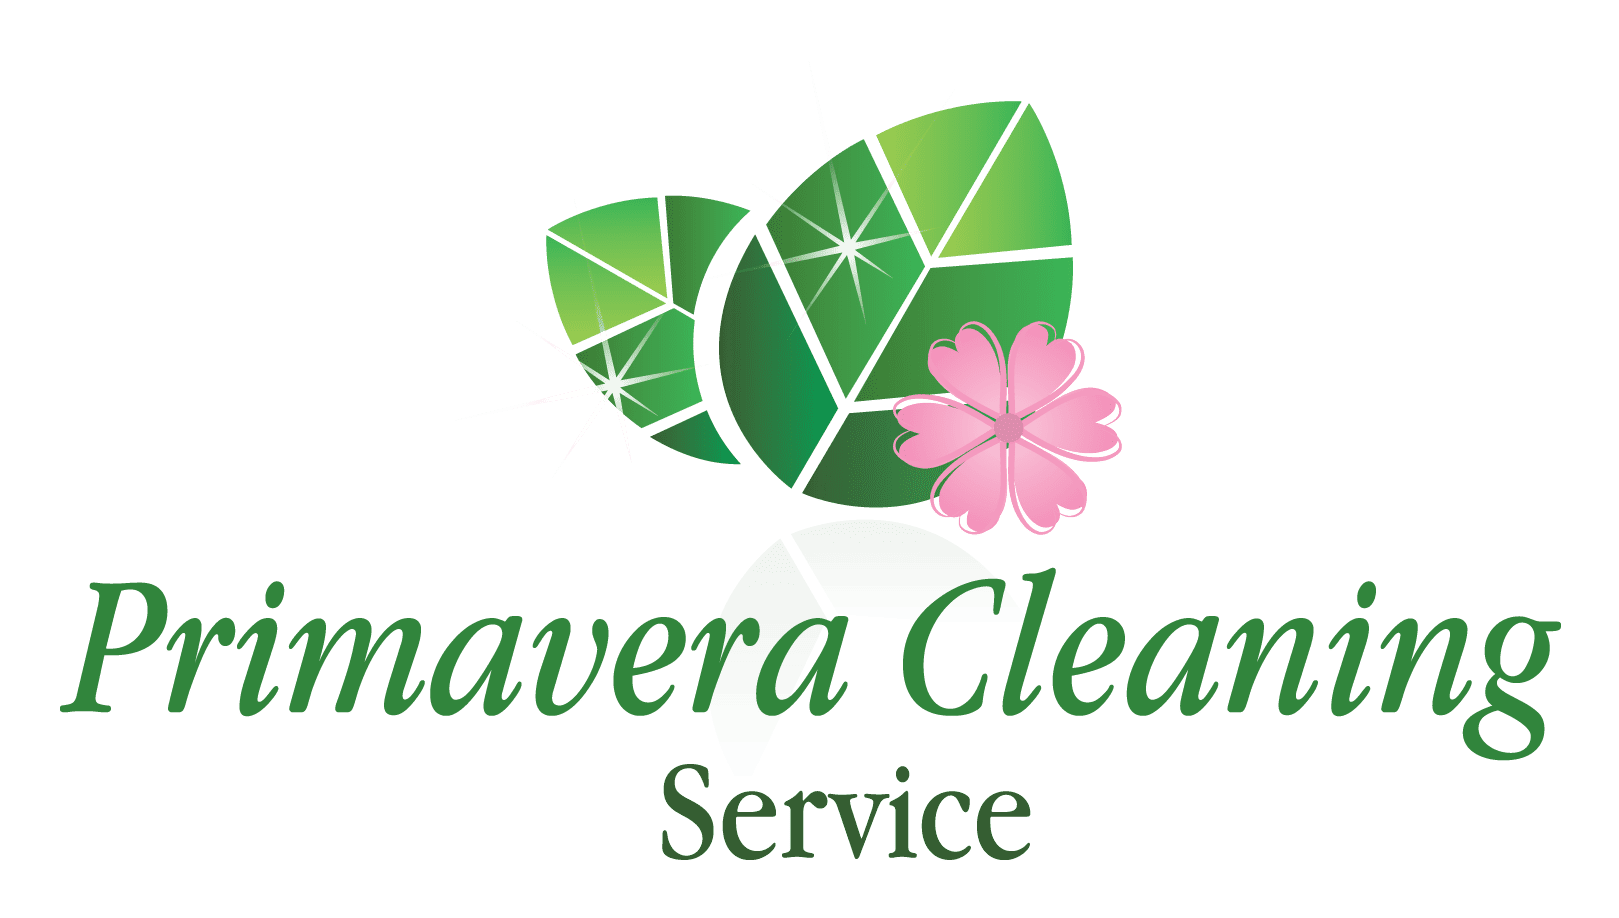 House Cleaning Madison, Sun Prairie, DeForest, Waunakee, Middleton, Fitchburg, Verona, Madison